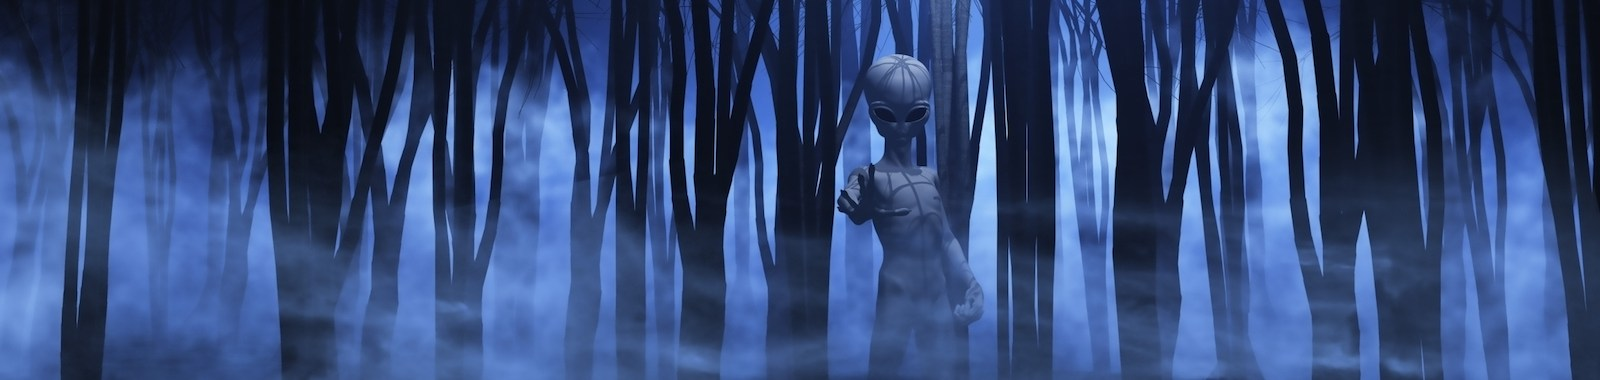 3D render of an alien in a spooky foggy forest